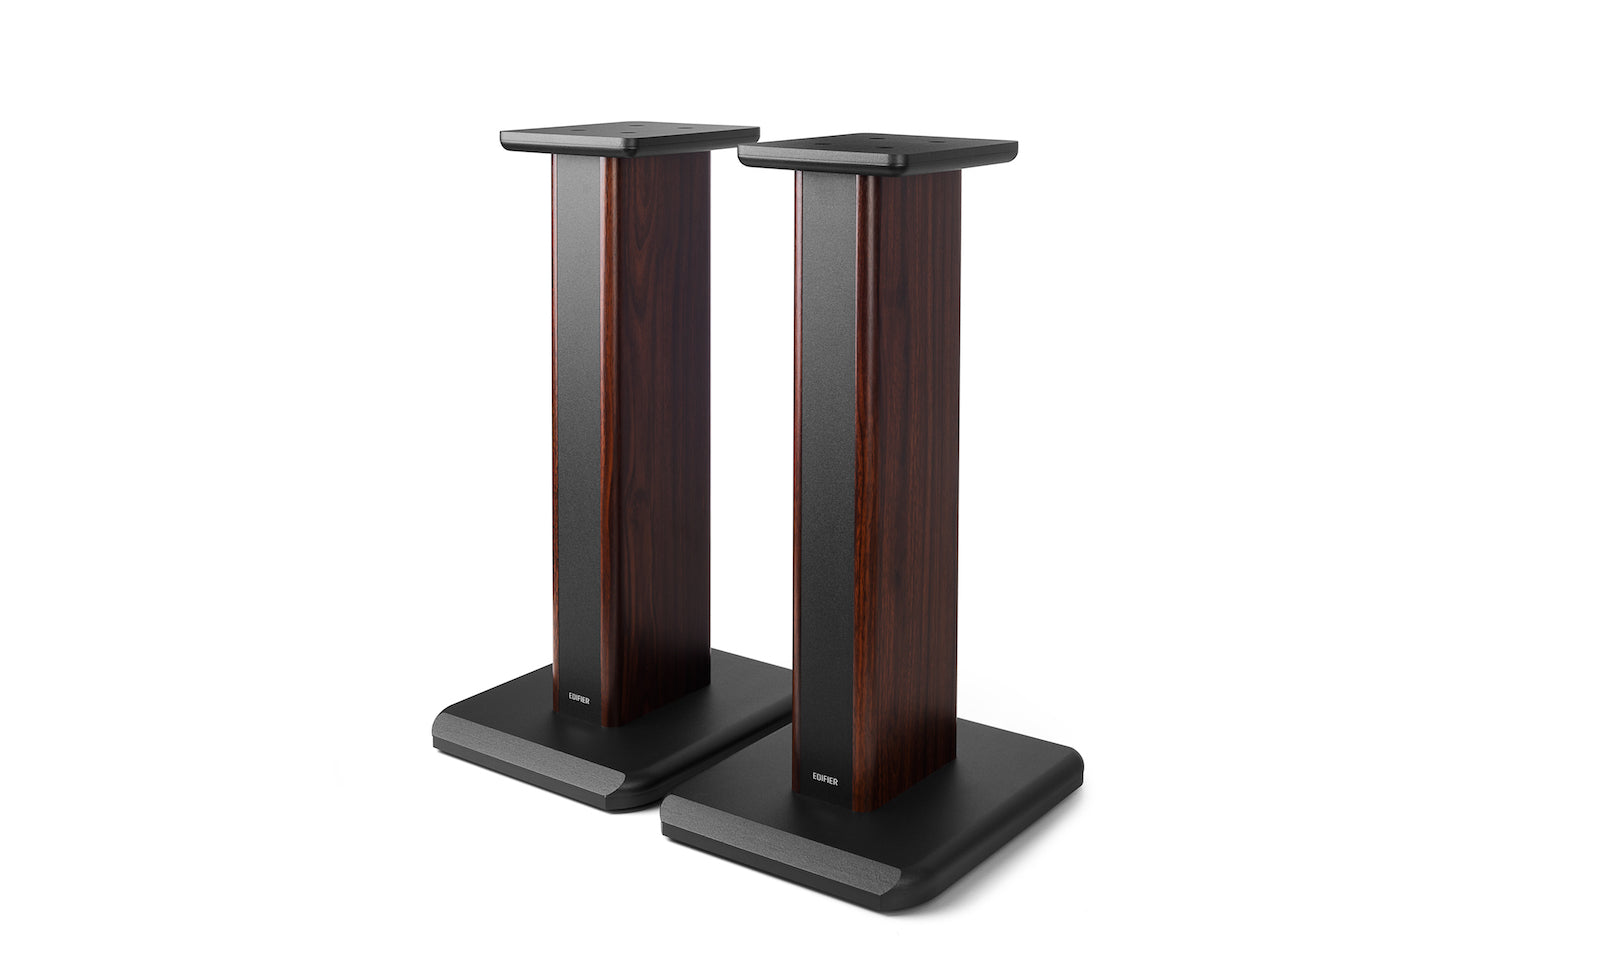 S3000 Pro Stands